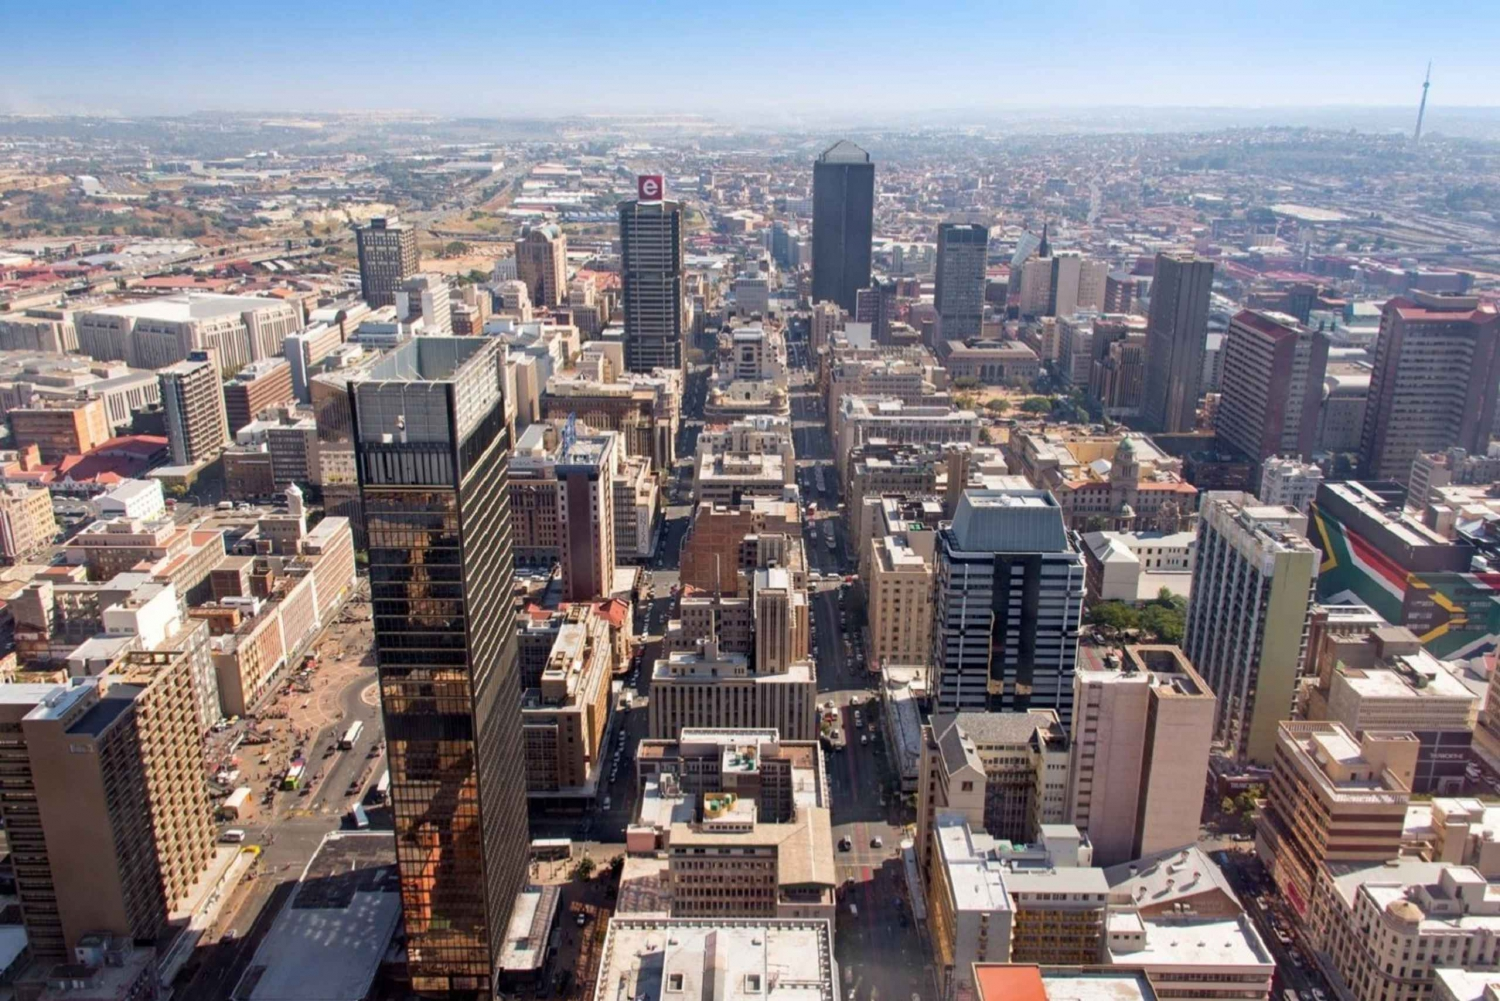 Johannesburg and Soweto: Half Day Tour